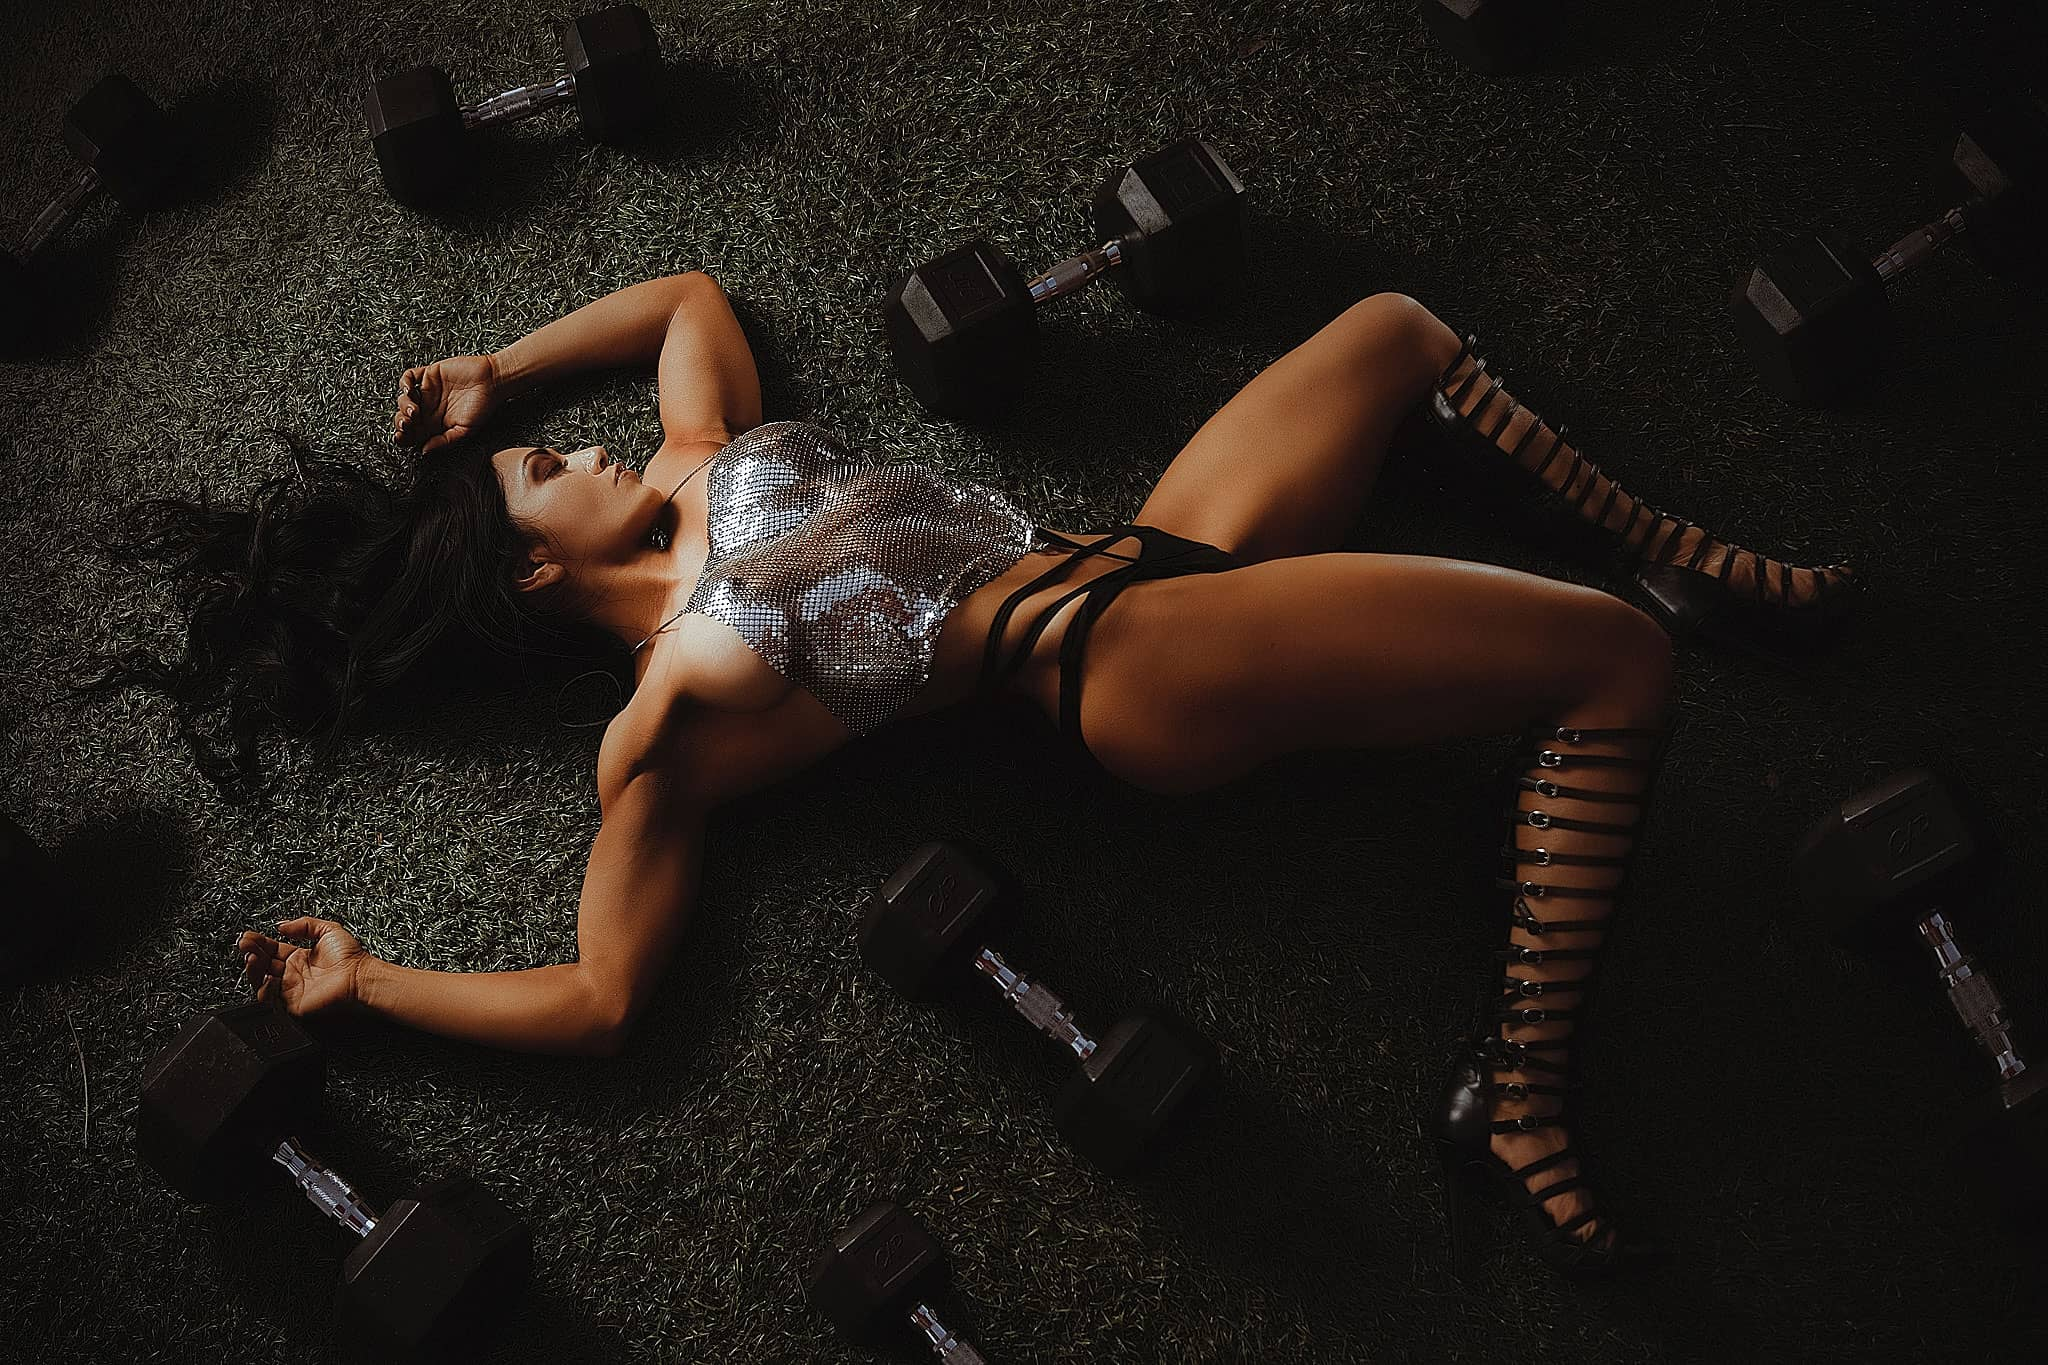 Header Commercial fitness-model-in-reflective-dress-relaxing-on-the-gym-floor-with--dumbbells